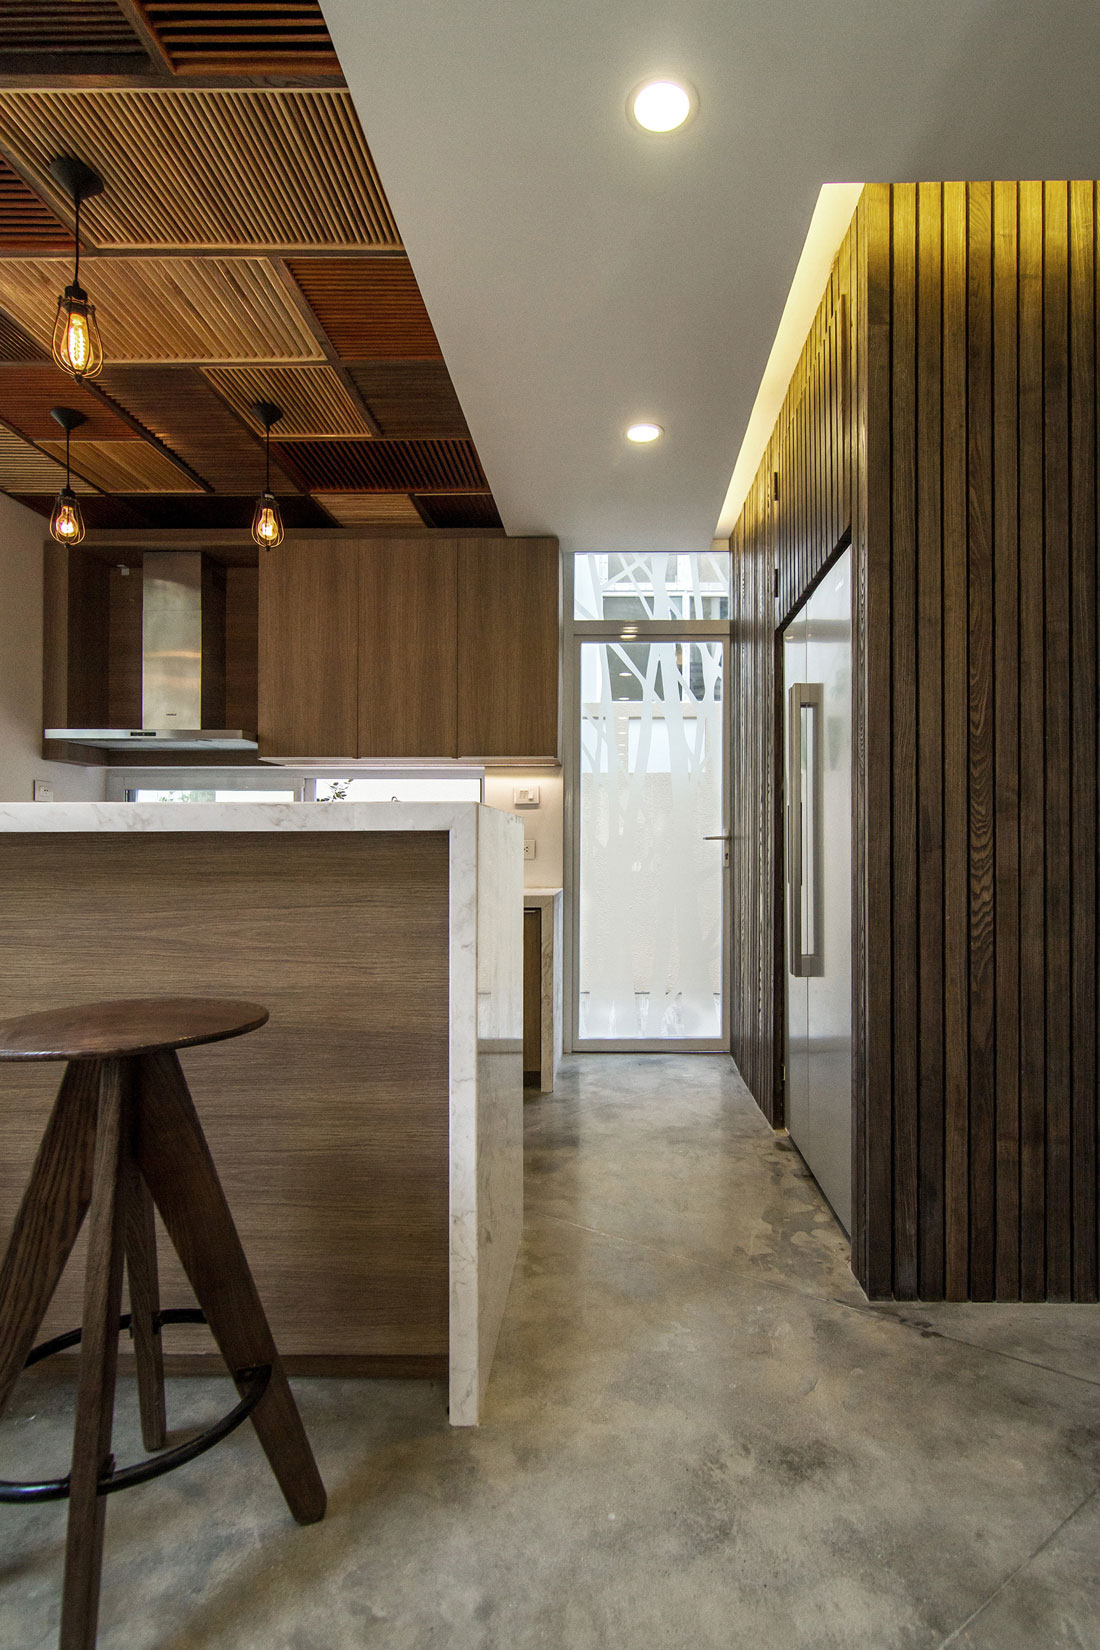 EPV Semi-Detached House Located in Ecopark Green Urban Area, Vietnam by AHL architects associates-07